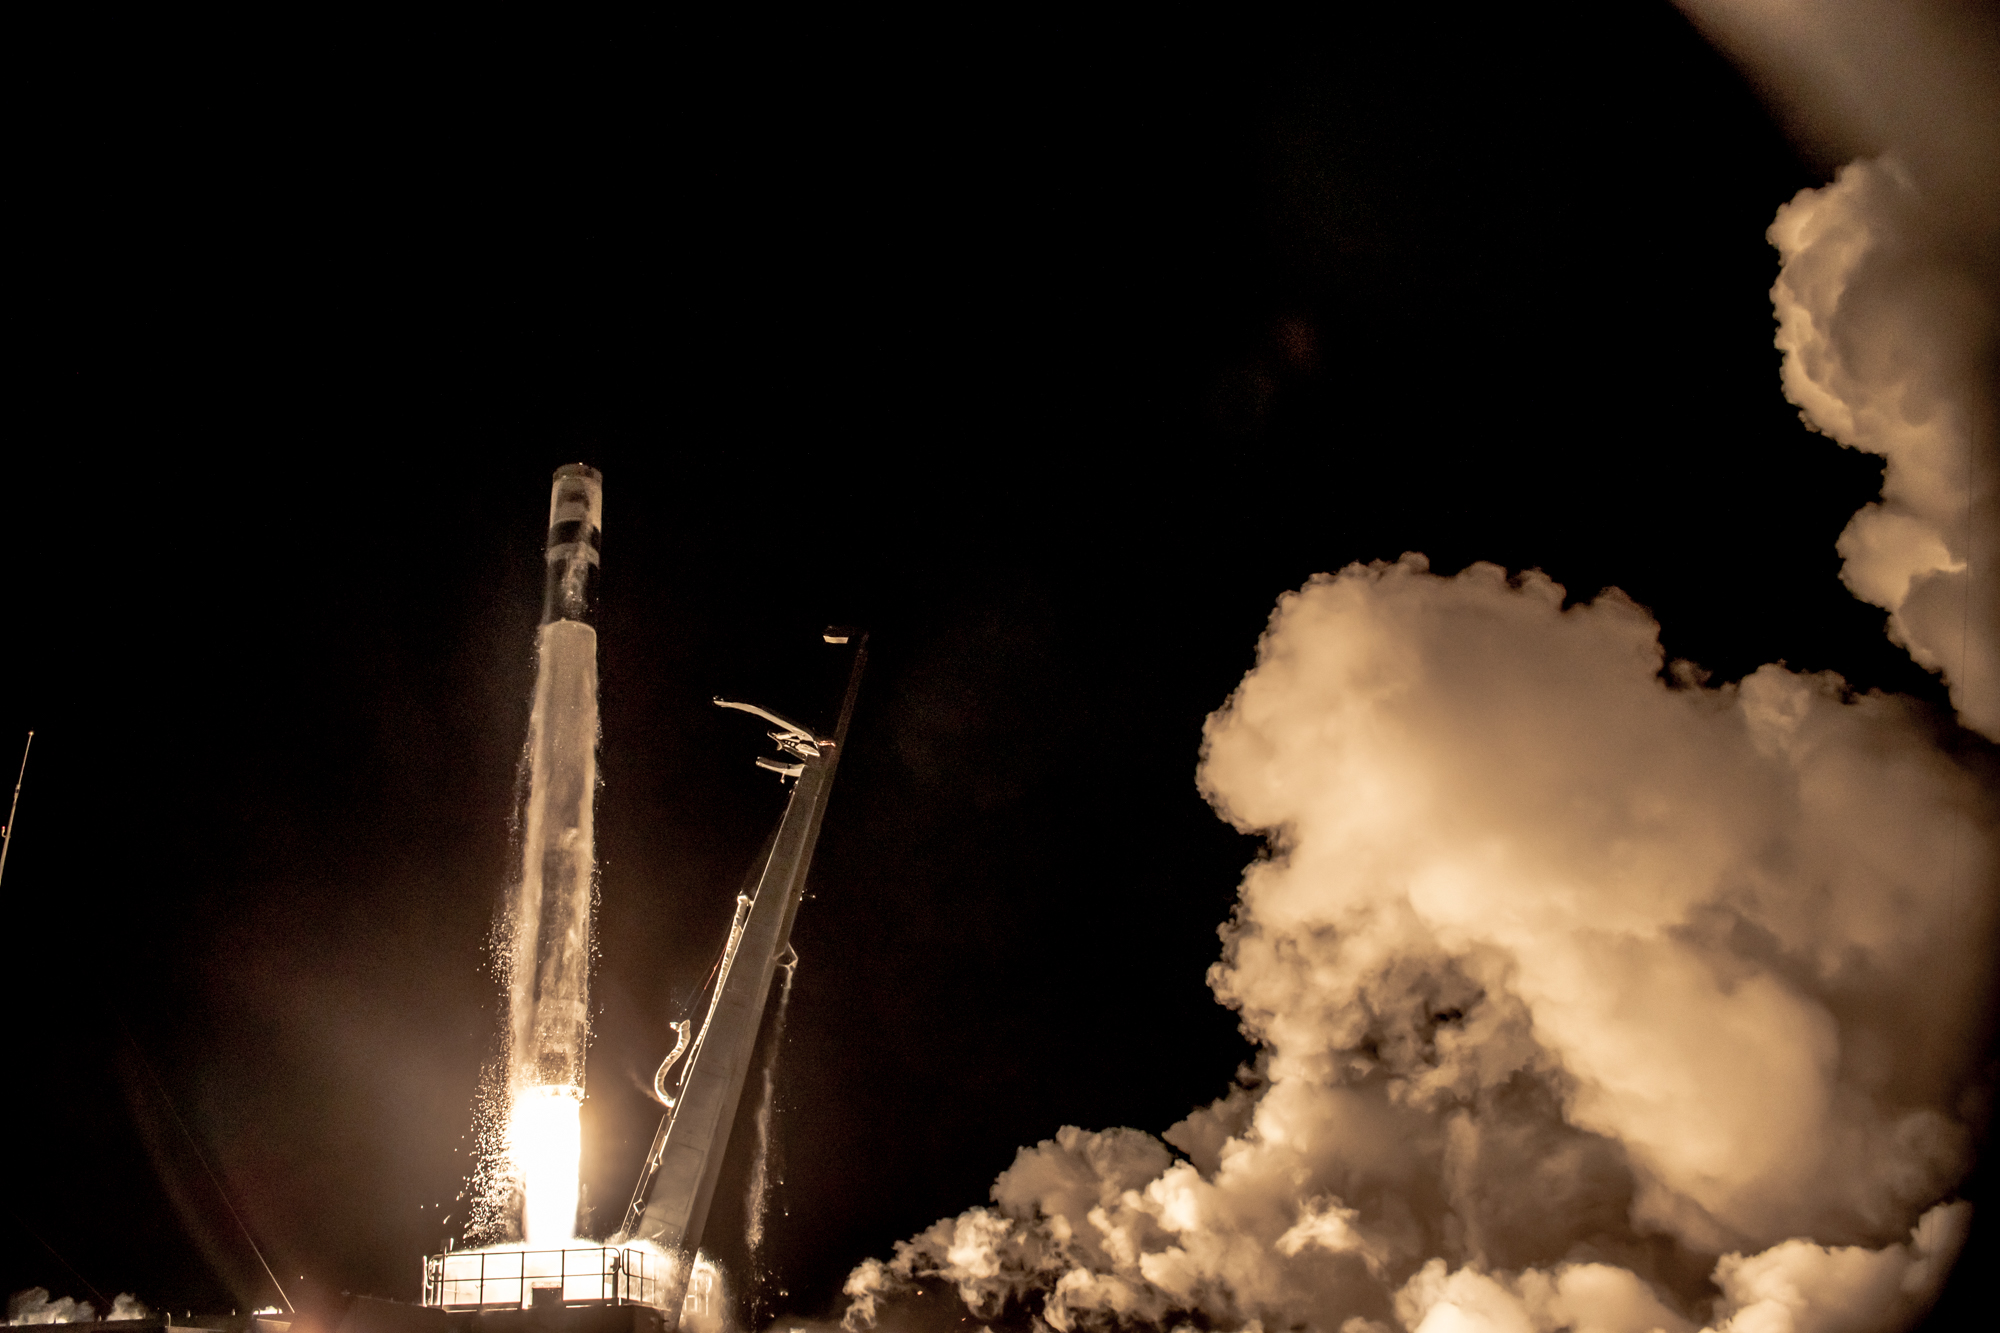 A Rocket Lab Electron rocket launches from the company's New Zealand facility, carrying an experimental Air Force Research Laboratory satellite into low Earth orbit on July 29, 2021. (Rocket Lab)